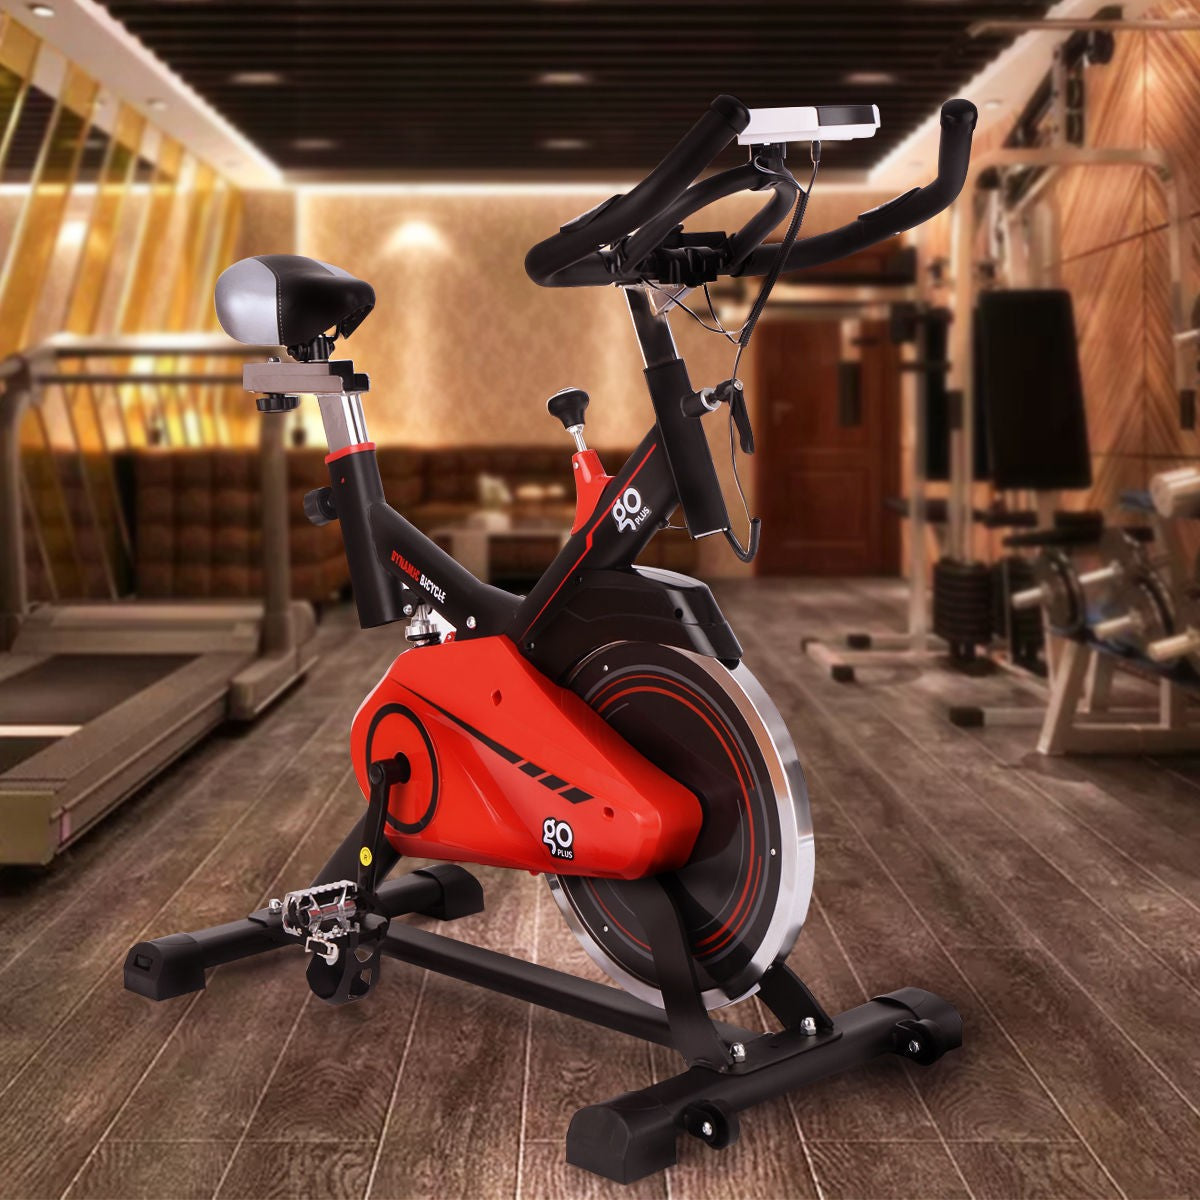 Costway Exercise Bike Cycling Stationary Cardio Fitness Health Adjustable Home Gym